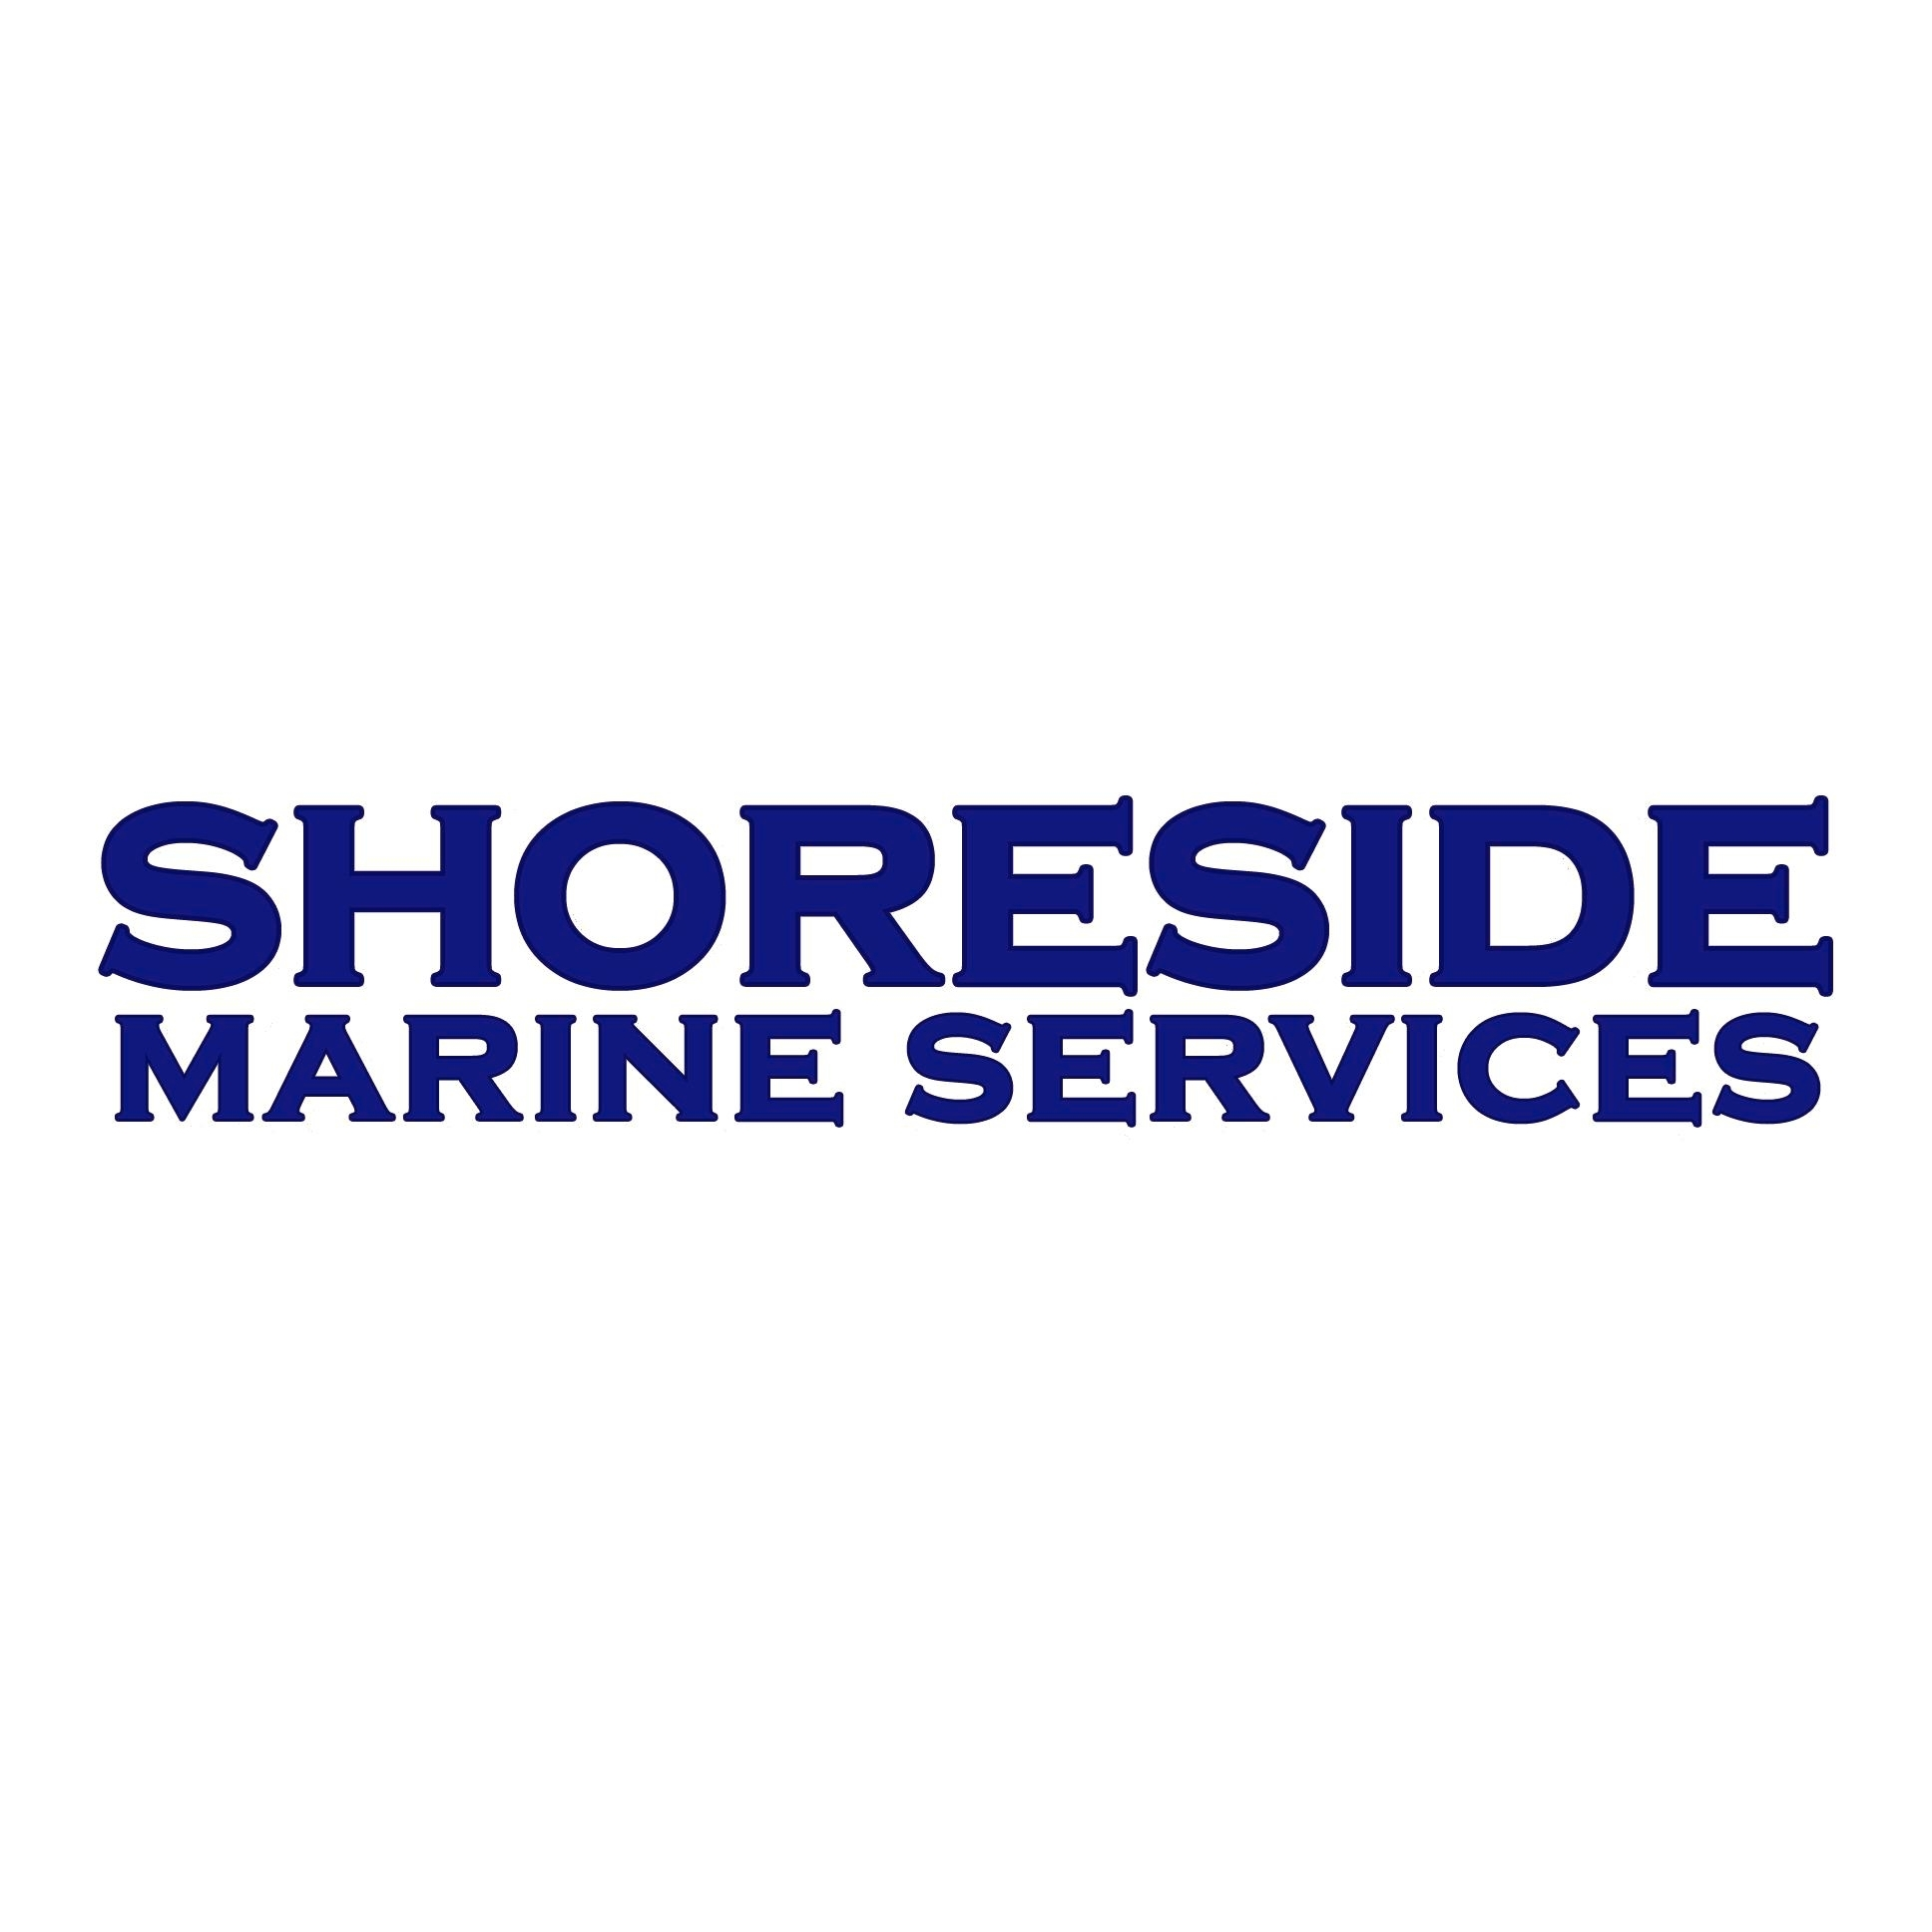 Shoreside Marine Services